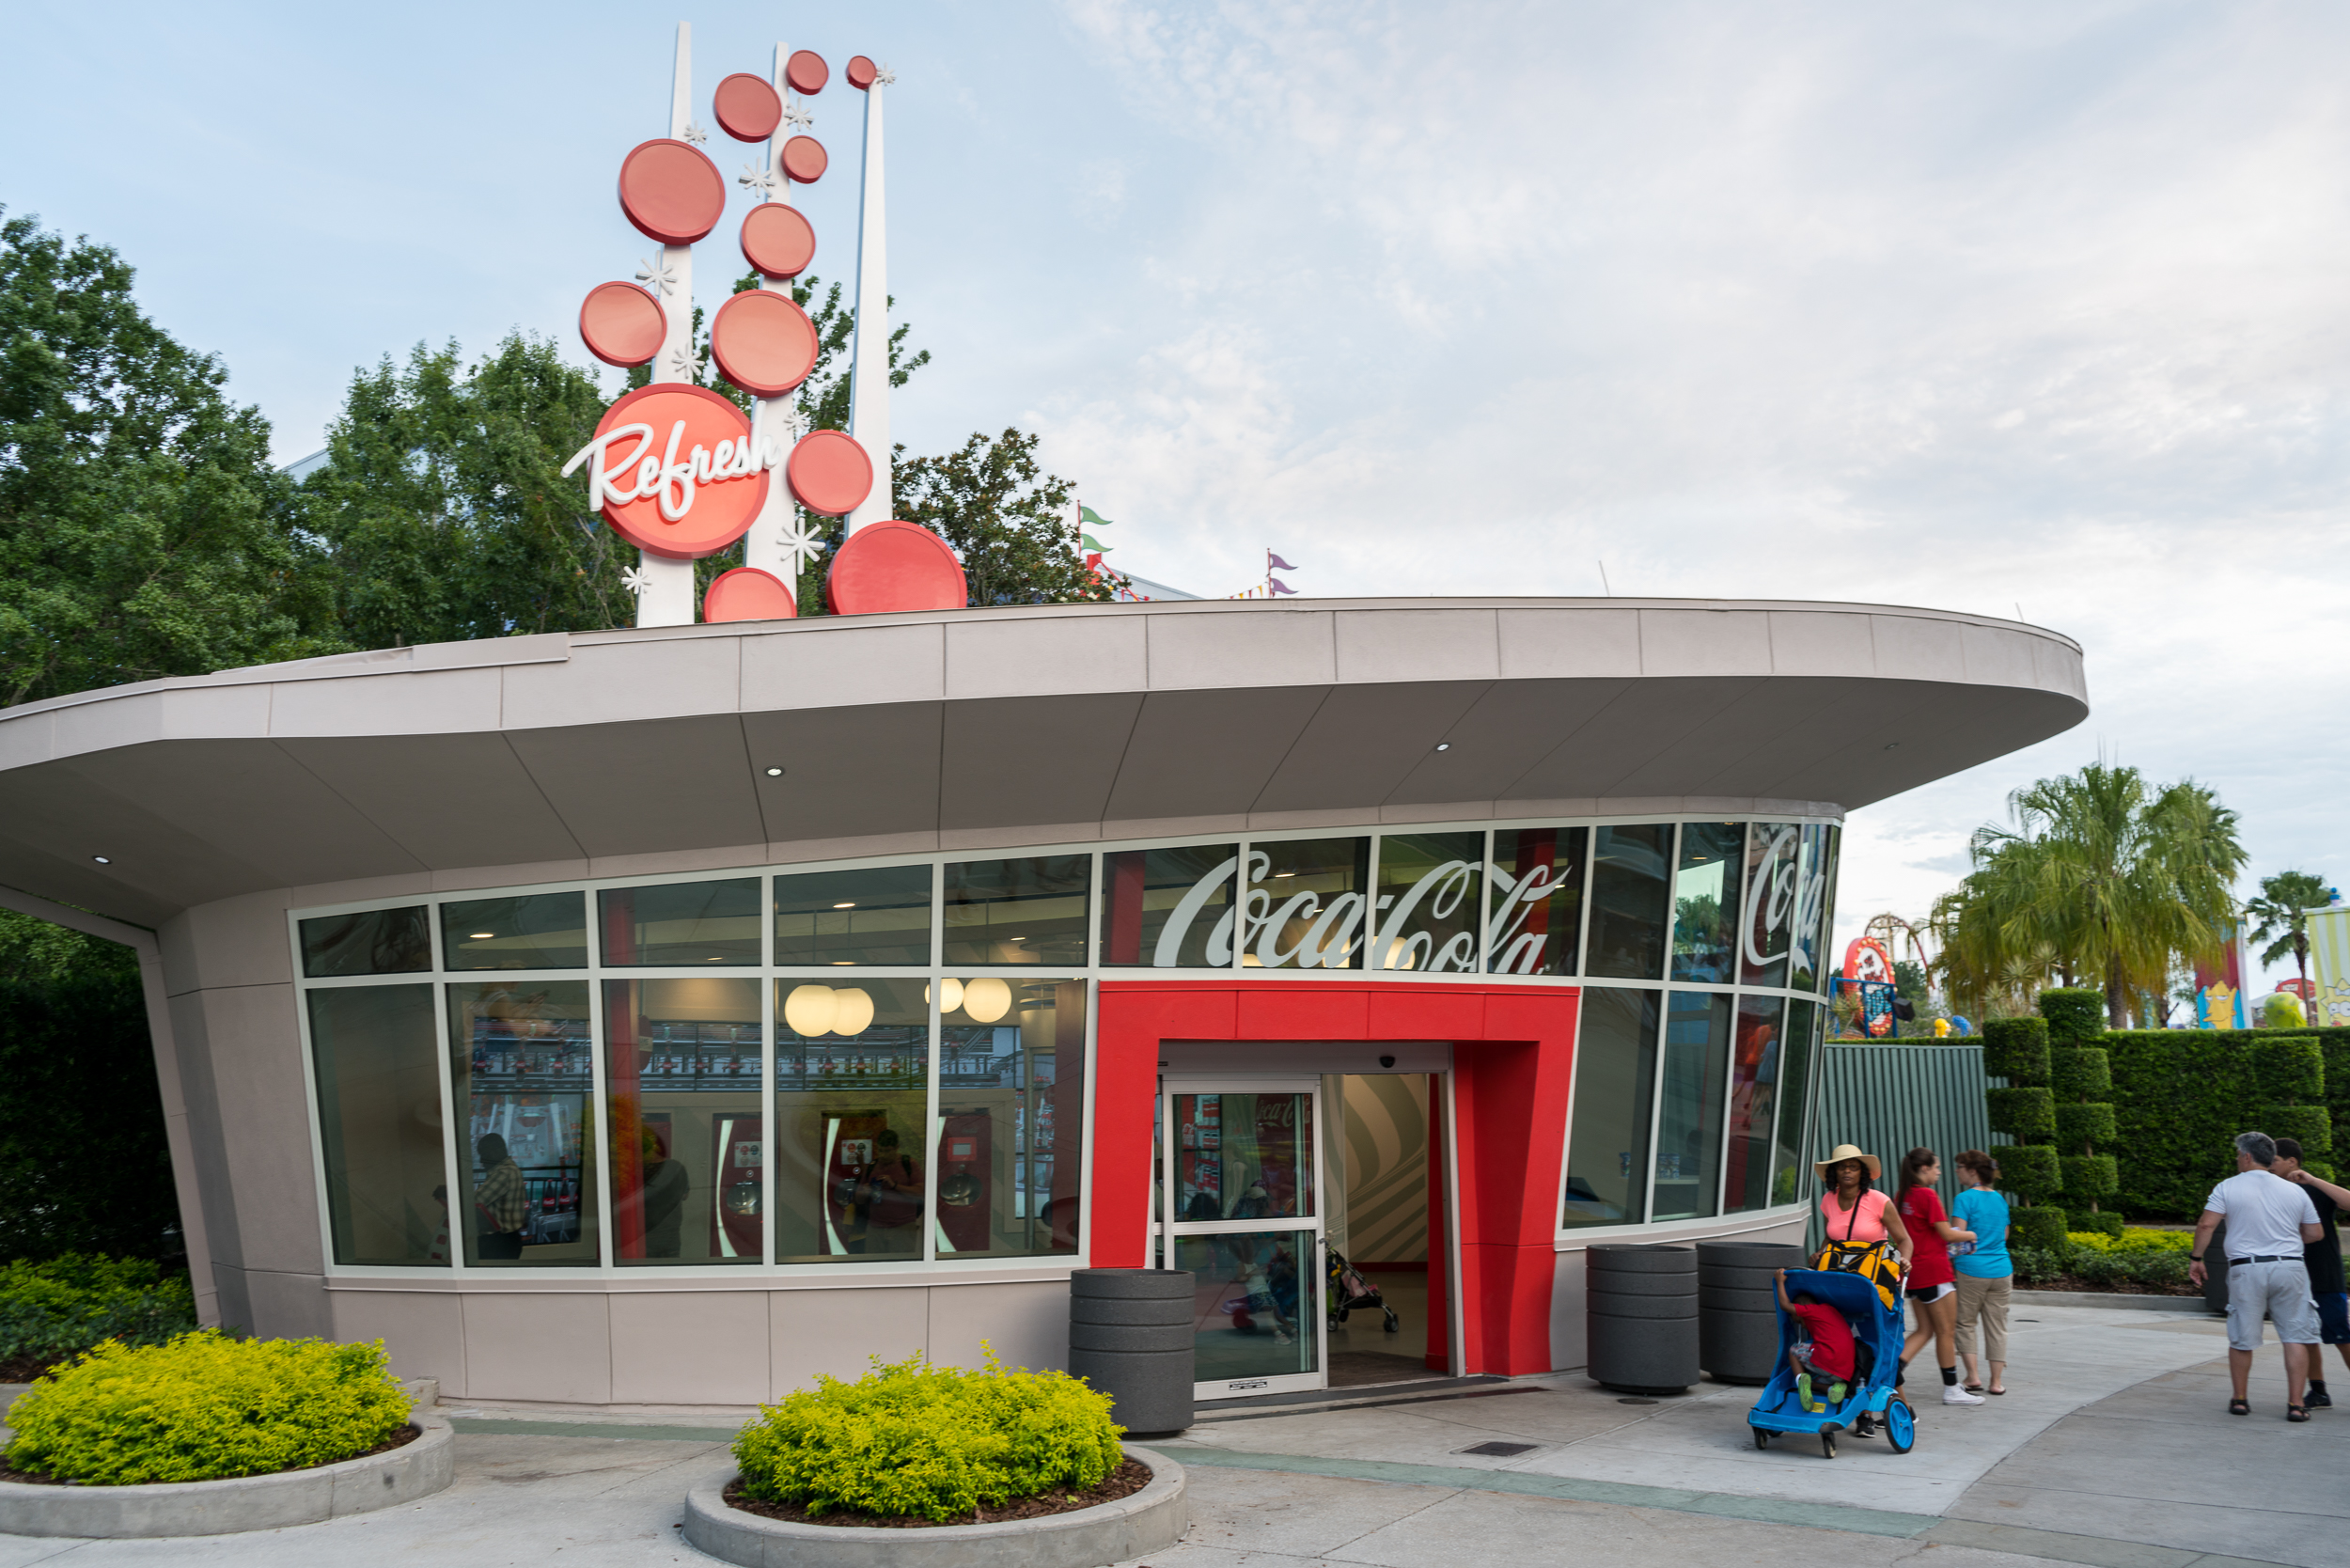 This small building houses several Coca-cola freestyle machines